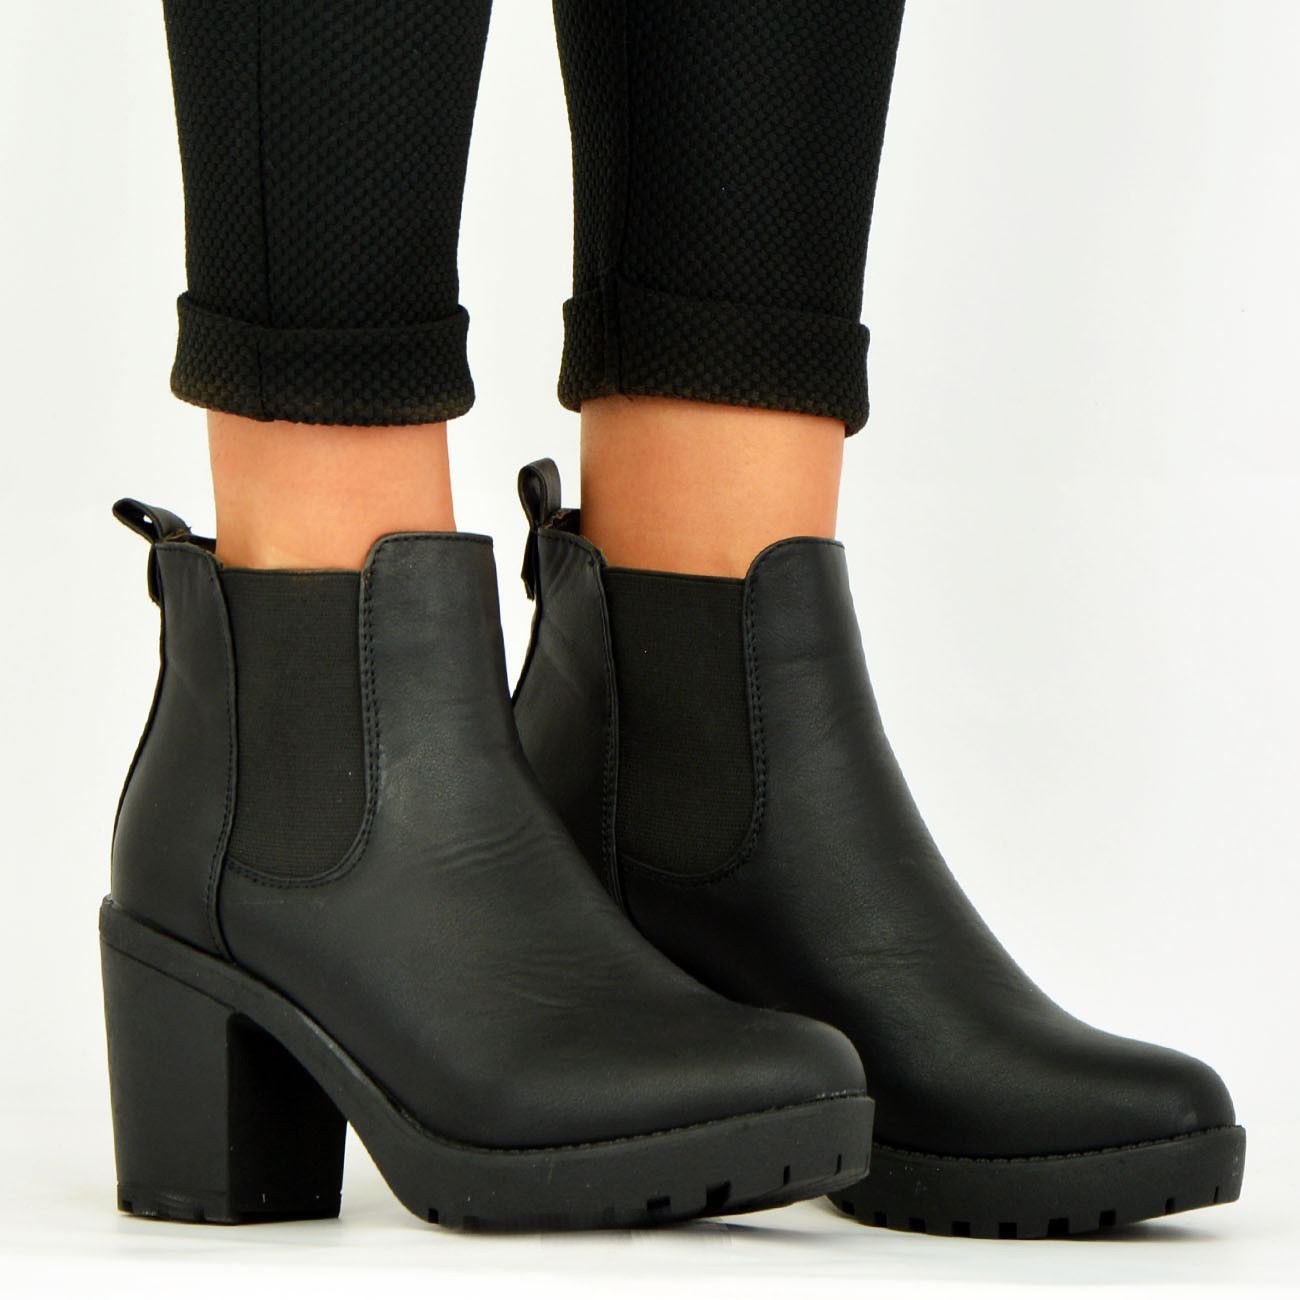 LADIES-WOMENS-ANKLE-CHELSEA-BOOTS-CHUNKY-BLOCK-HEELS-PLATFORM-SHOES-SIZE-UK-3-8 thumbnail 7